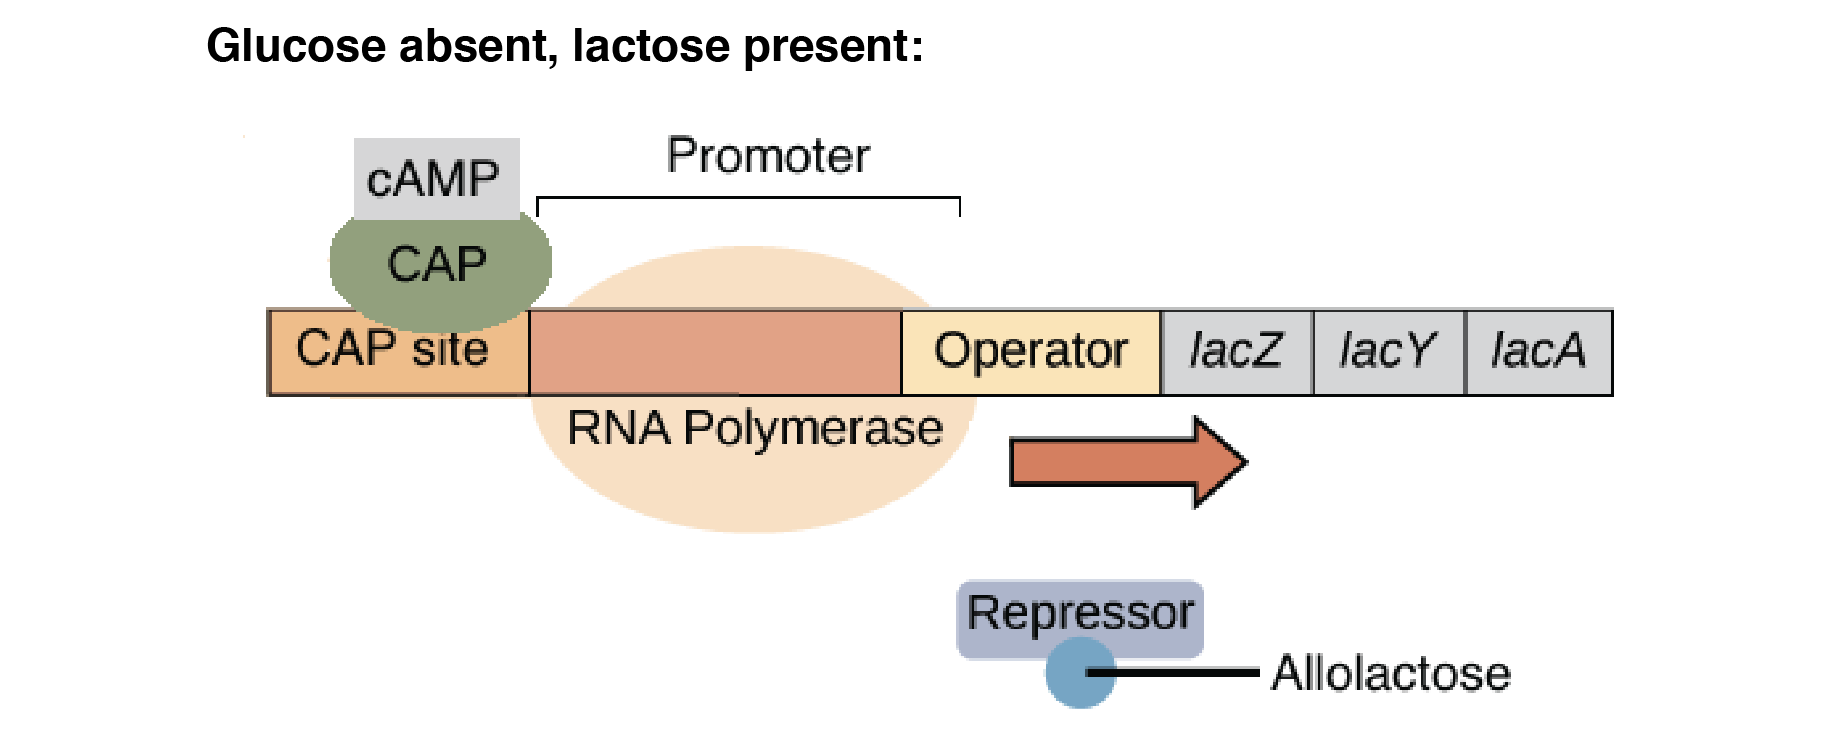 The lac operon consists of genes biology essay